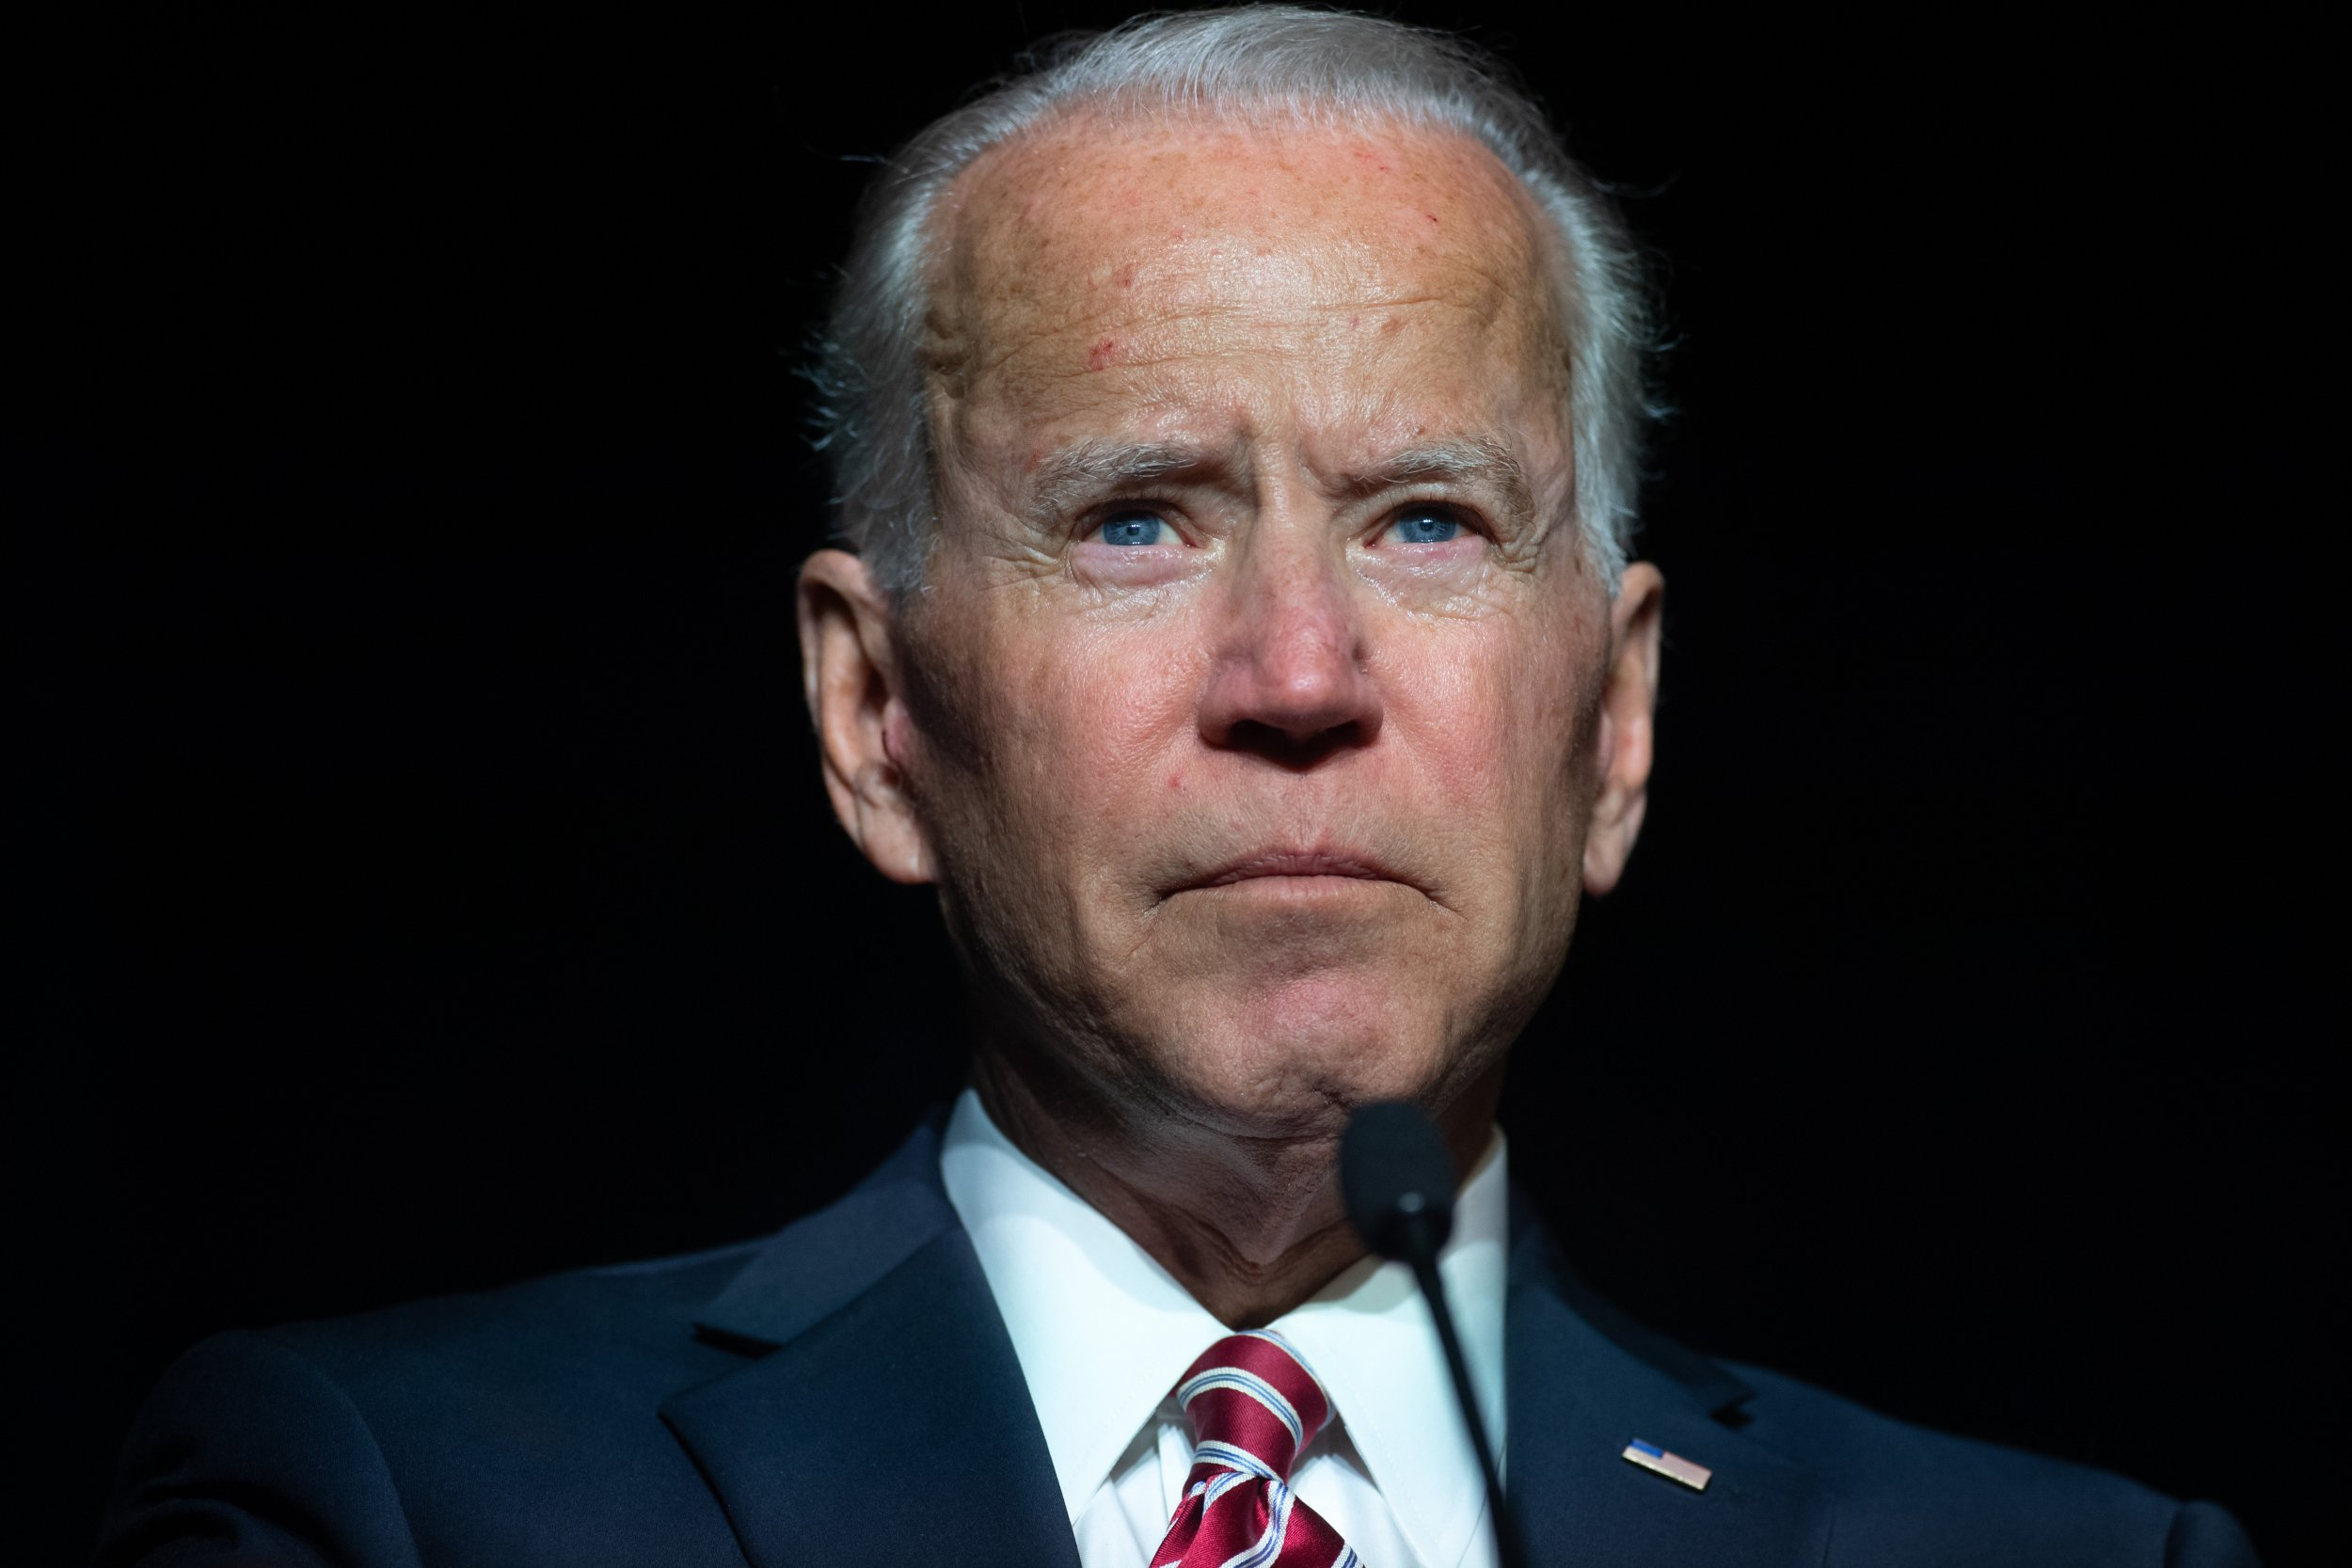 joe biden democrats 2020 lewandowski op-ed